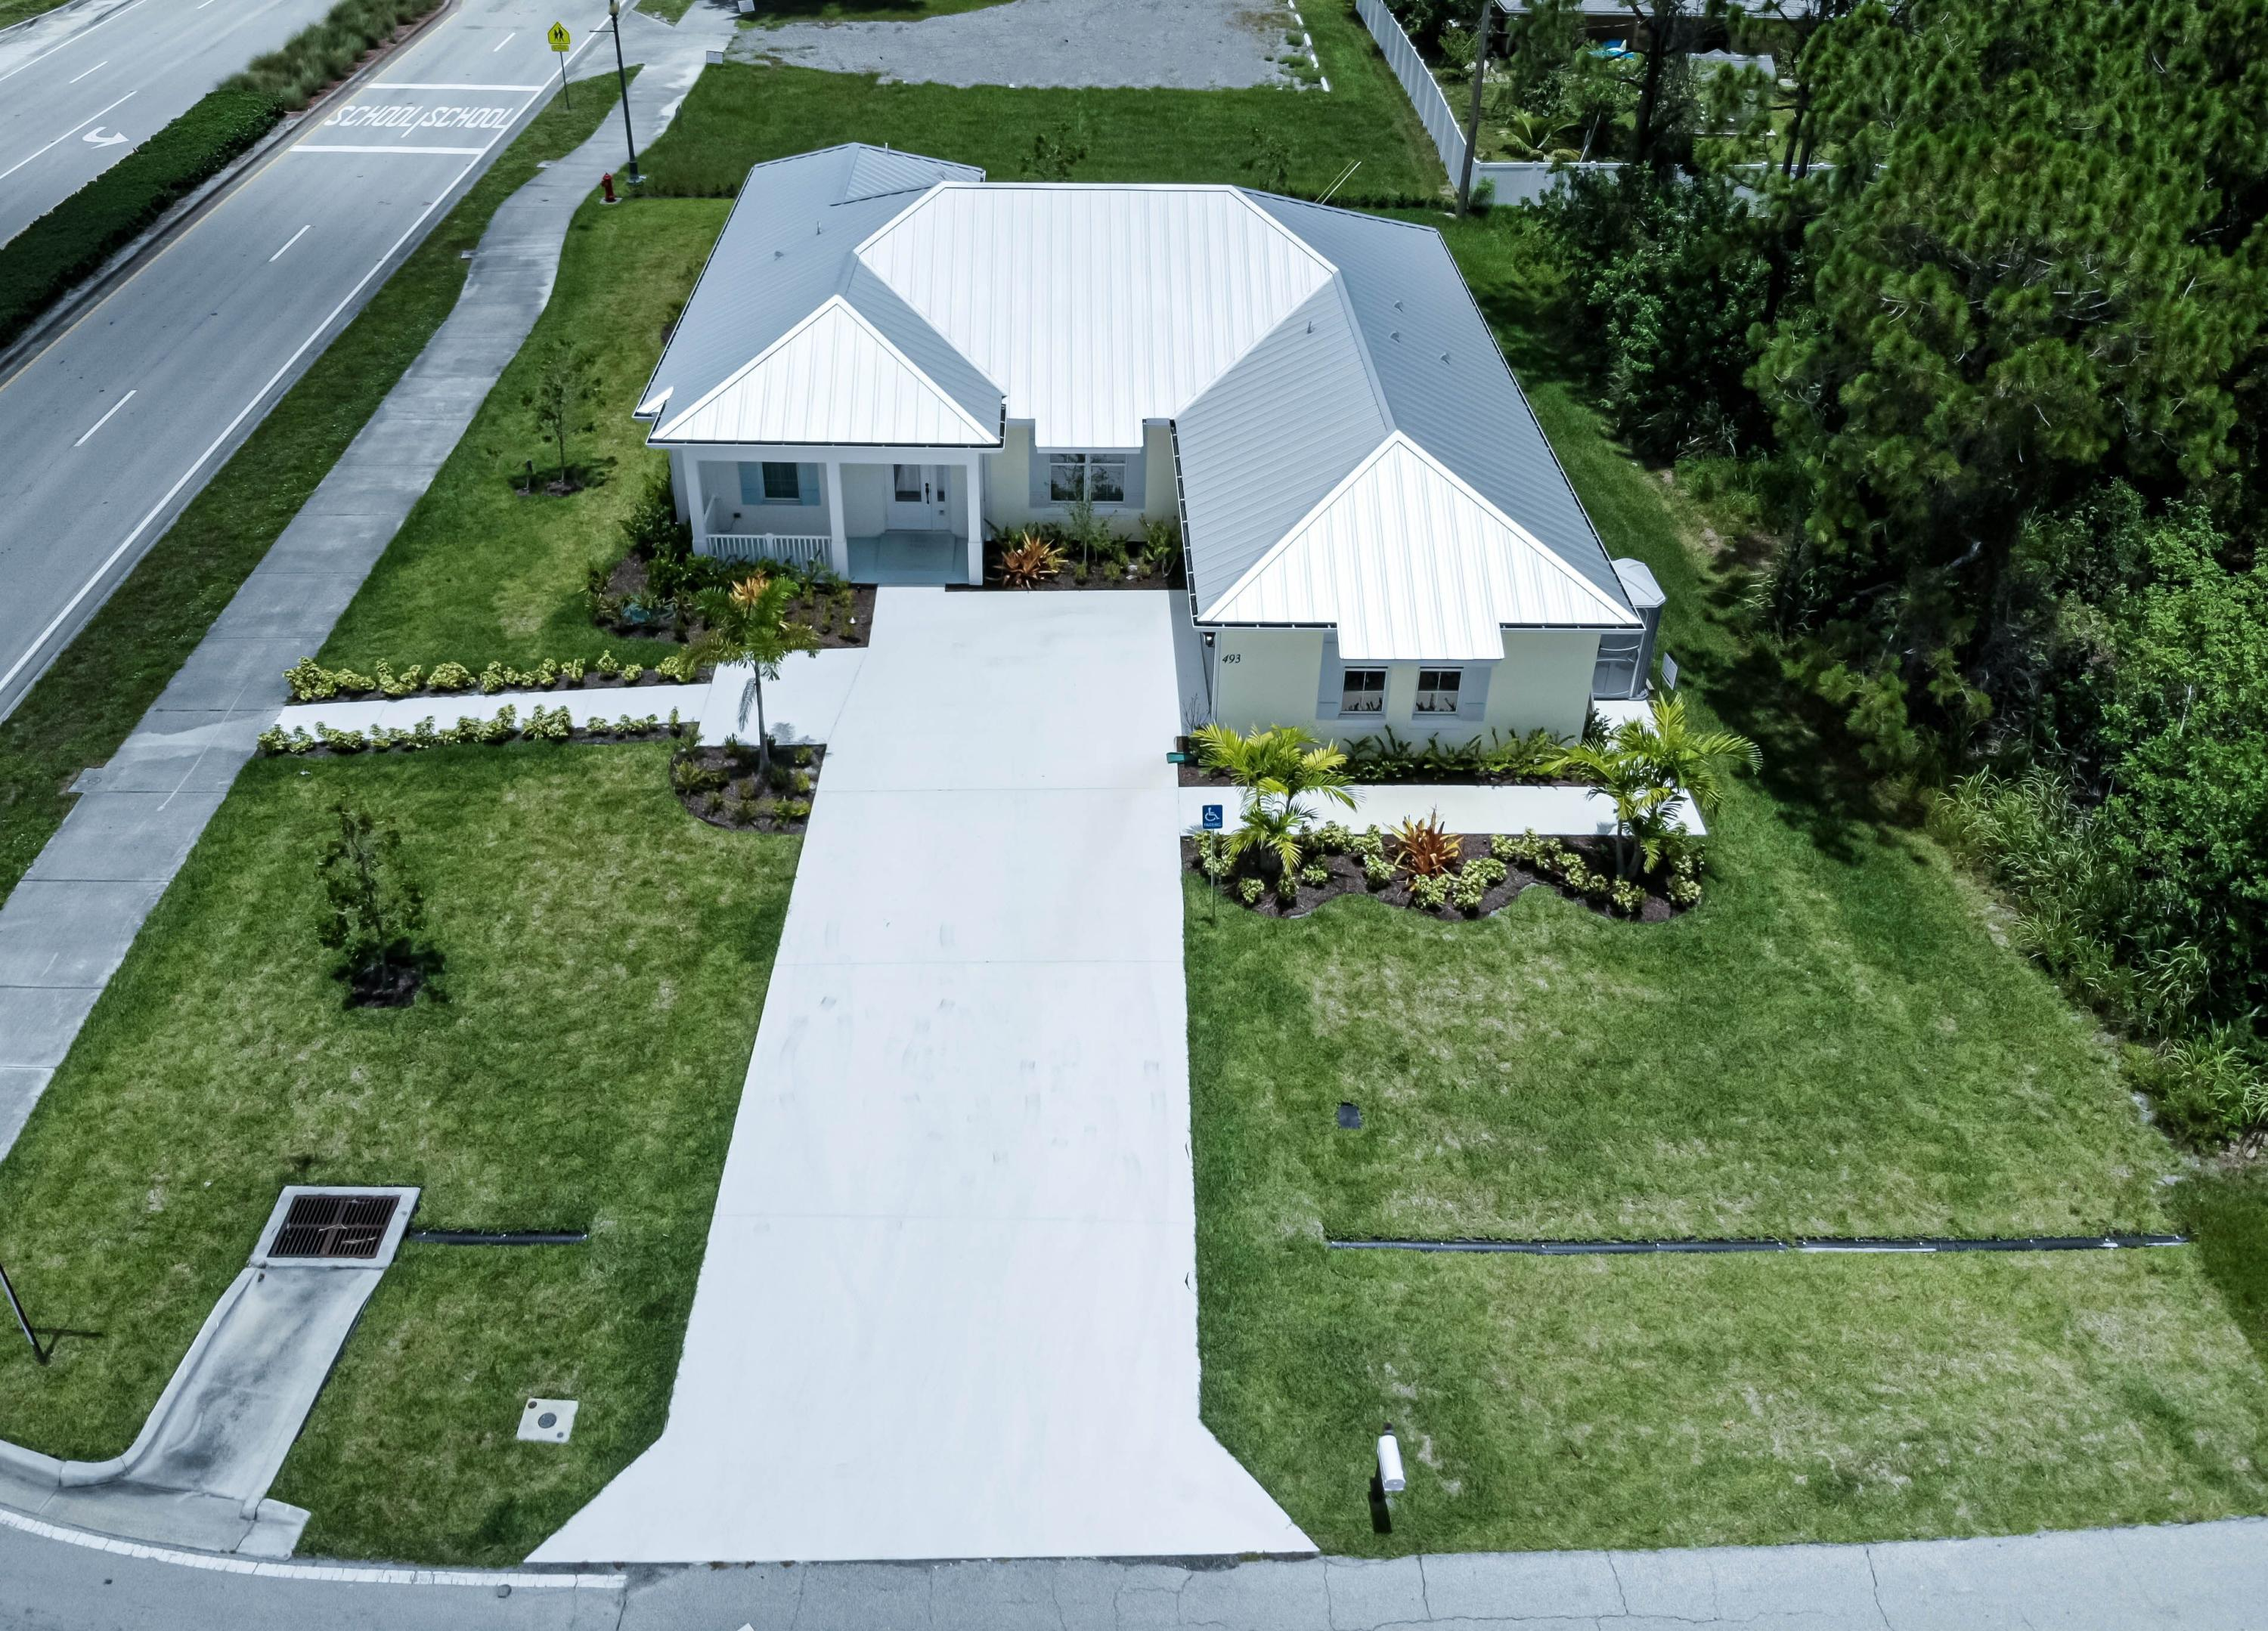 493 Sw Sea Flower Terrace, Port Saint Lucie, FL 34984